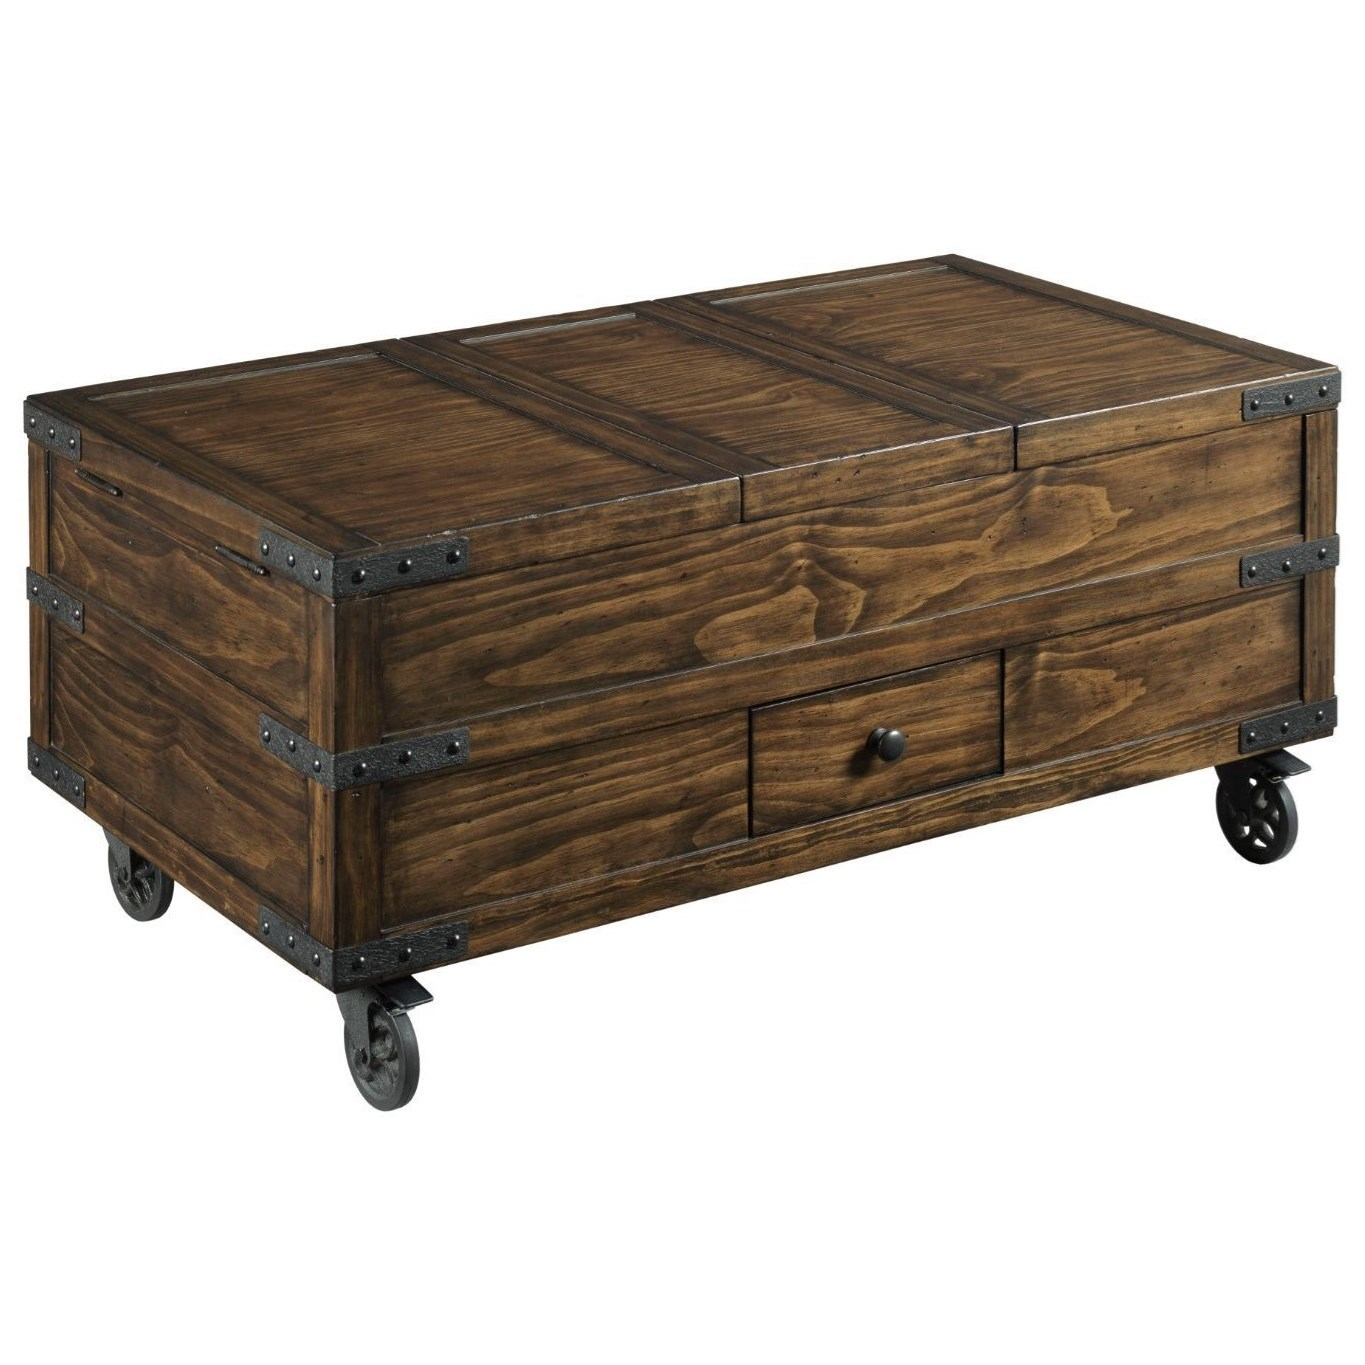 Hidden Treasures Trunk Coffee Table by Hammary at Johnny Janosik